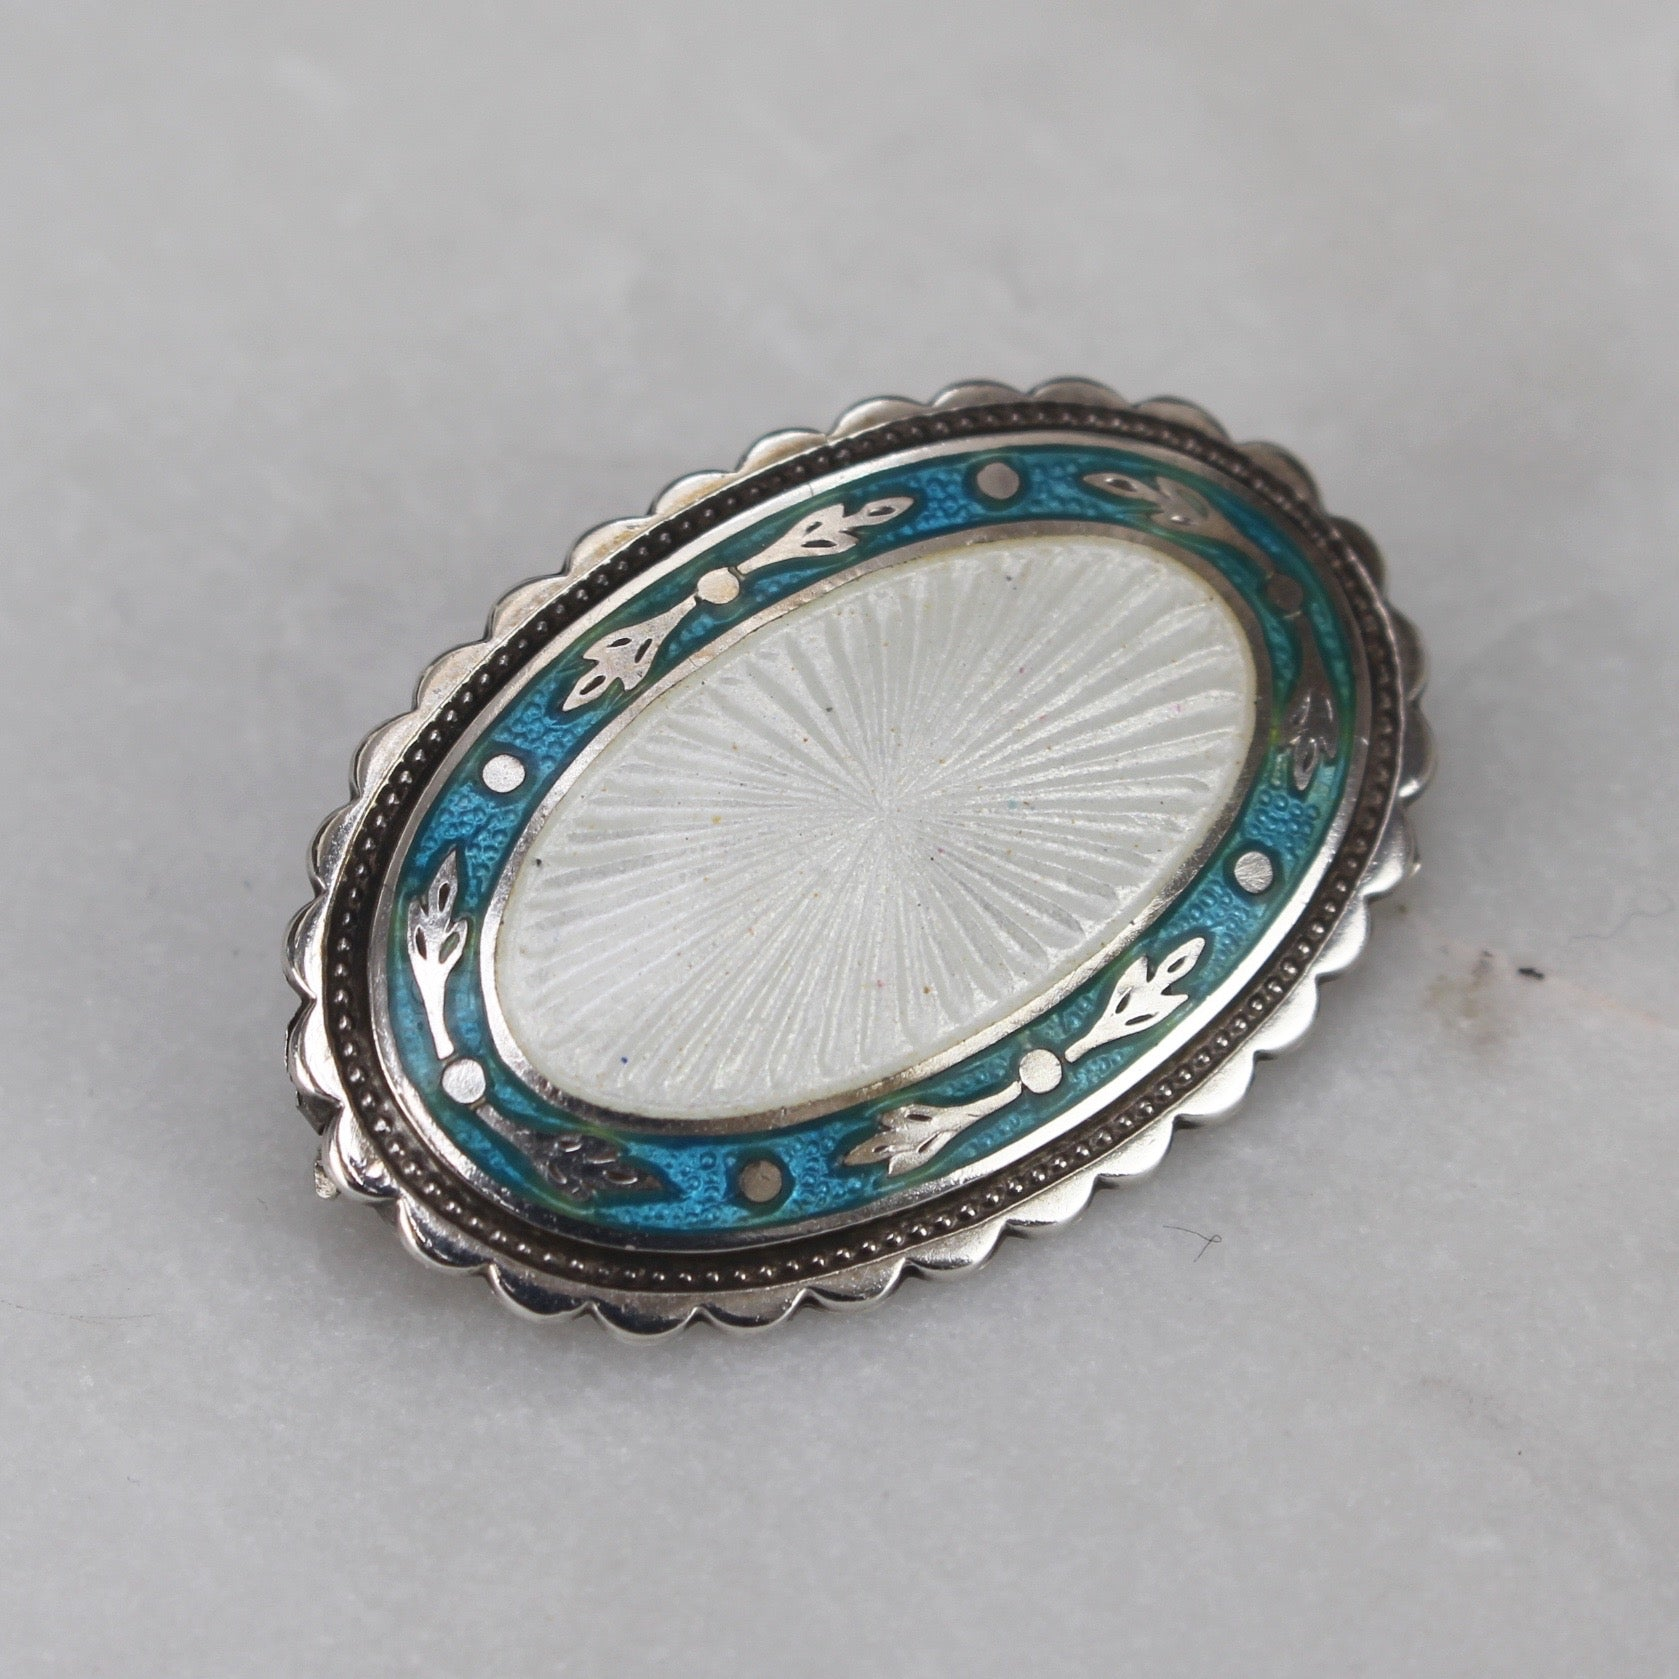 Antique Enamel and Sterling Silver brooch (1918-1919)